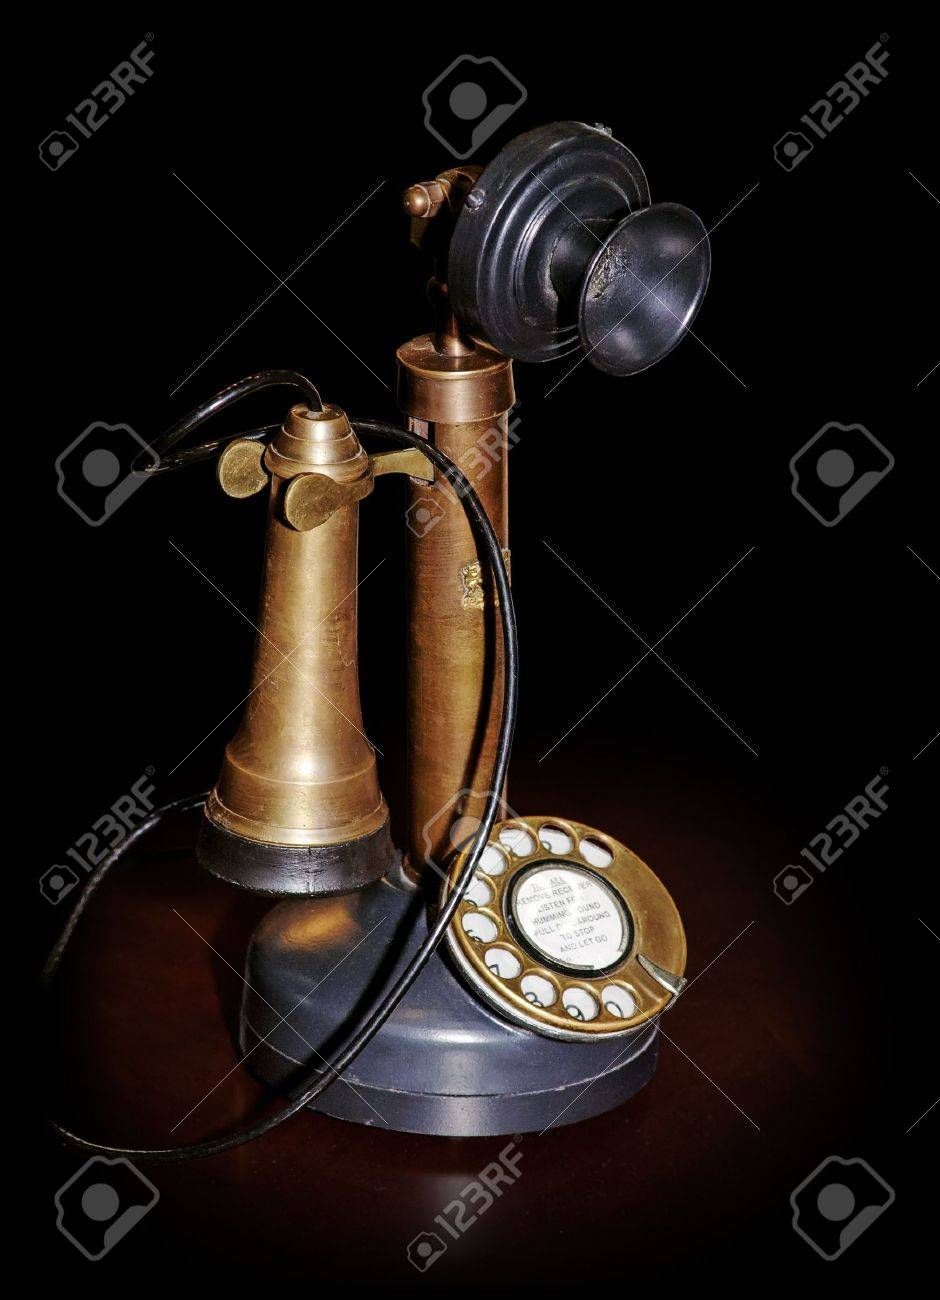 Vintage phone on table isolated on black (pure black edges on picture) with clipping path - 10160346